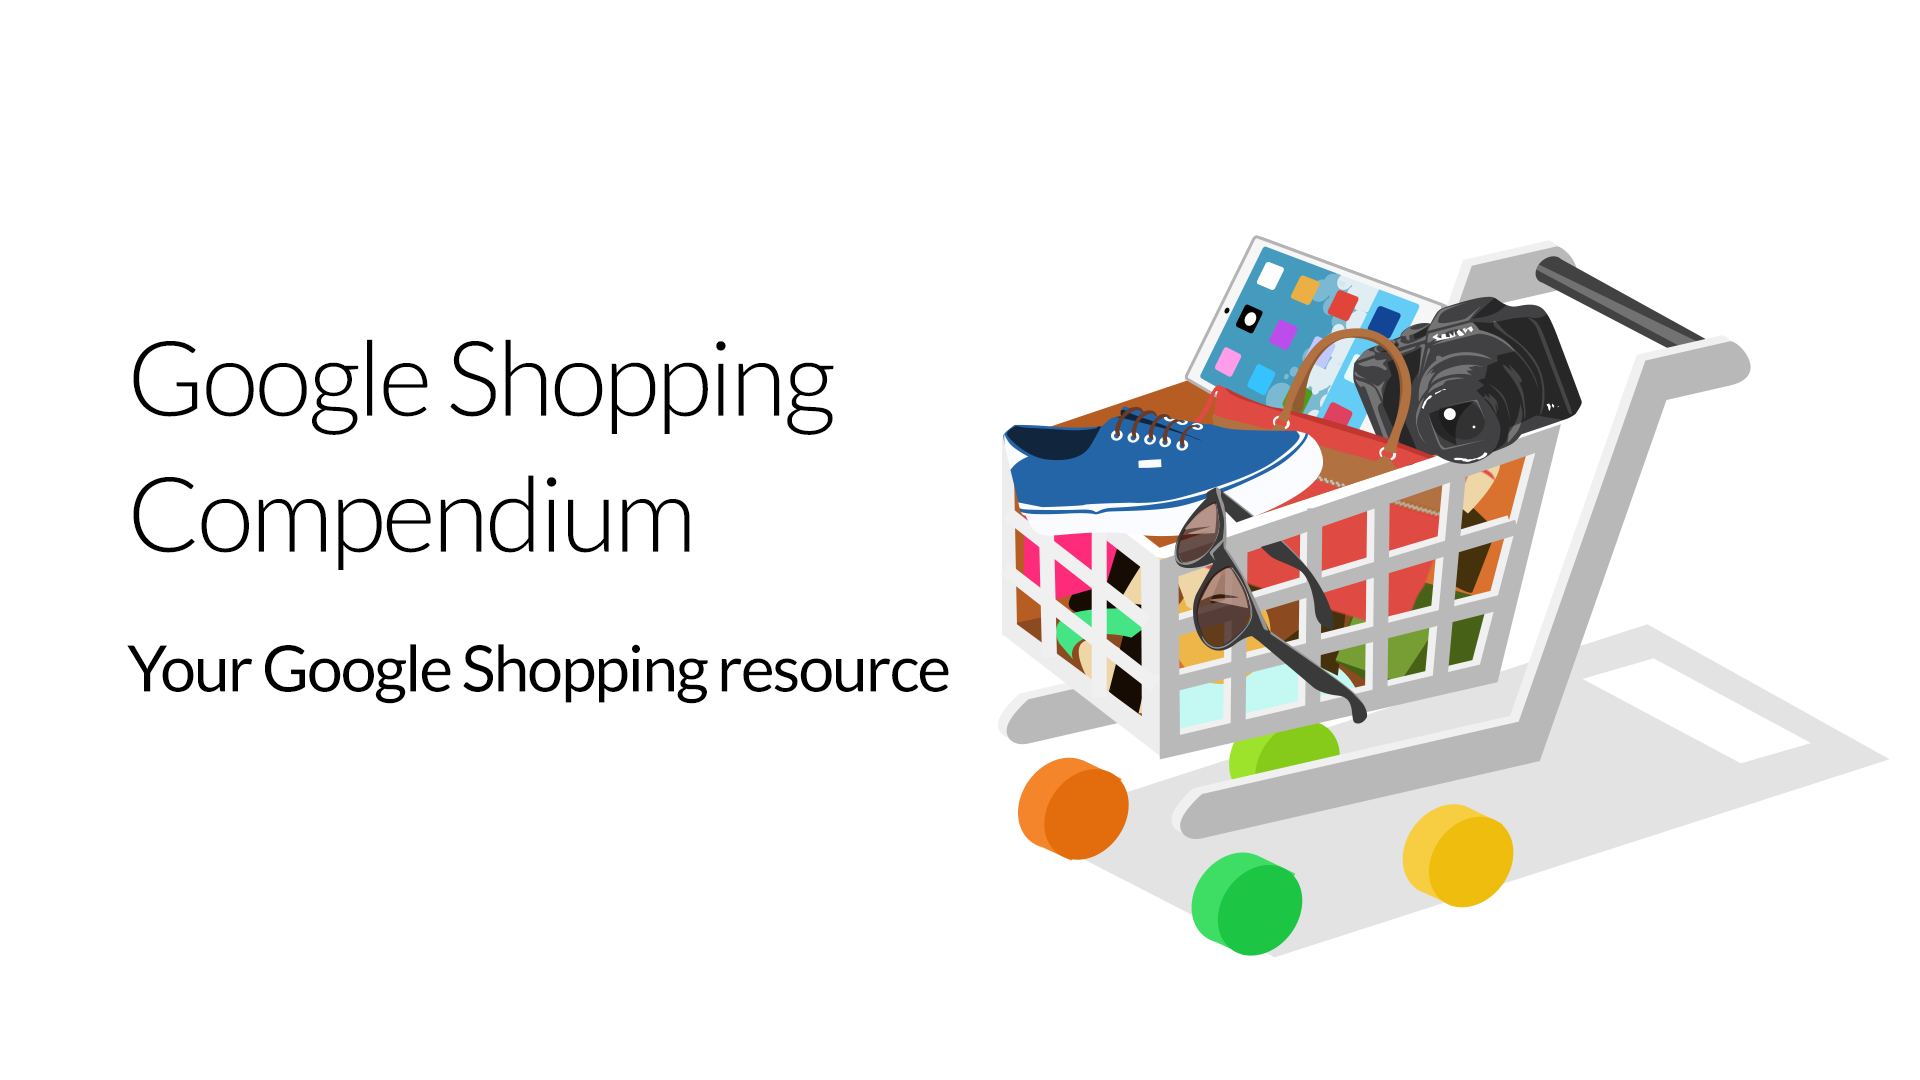 Google Shopping Compendium Hero Image